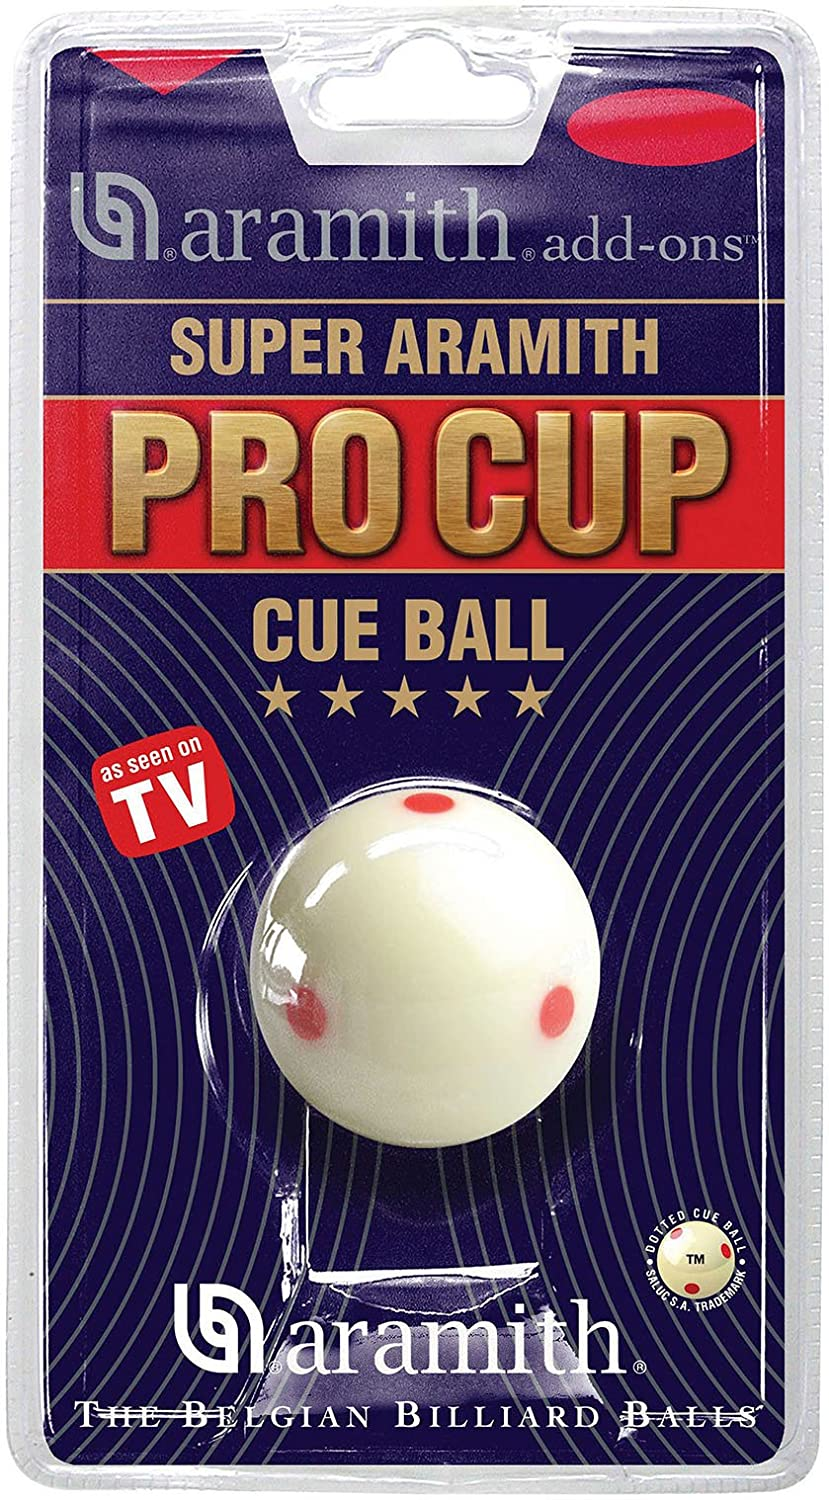 Aramith Pro Cup TV Snooker Cue Ball 2-1/16? Size by Unknown